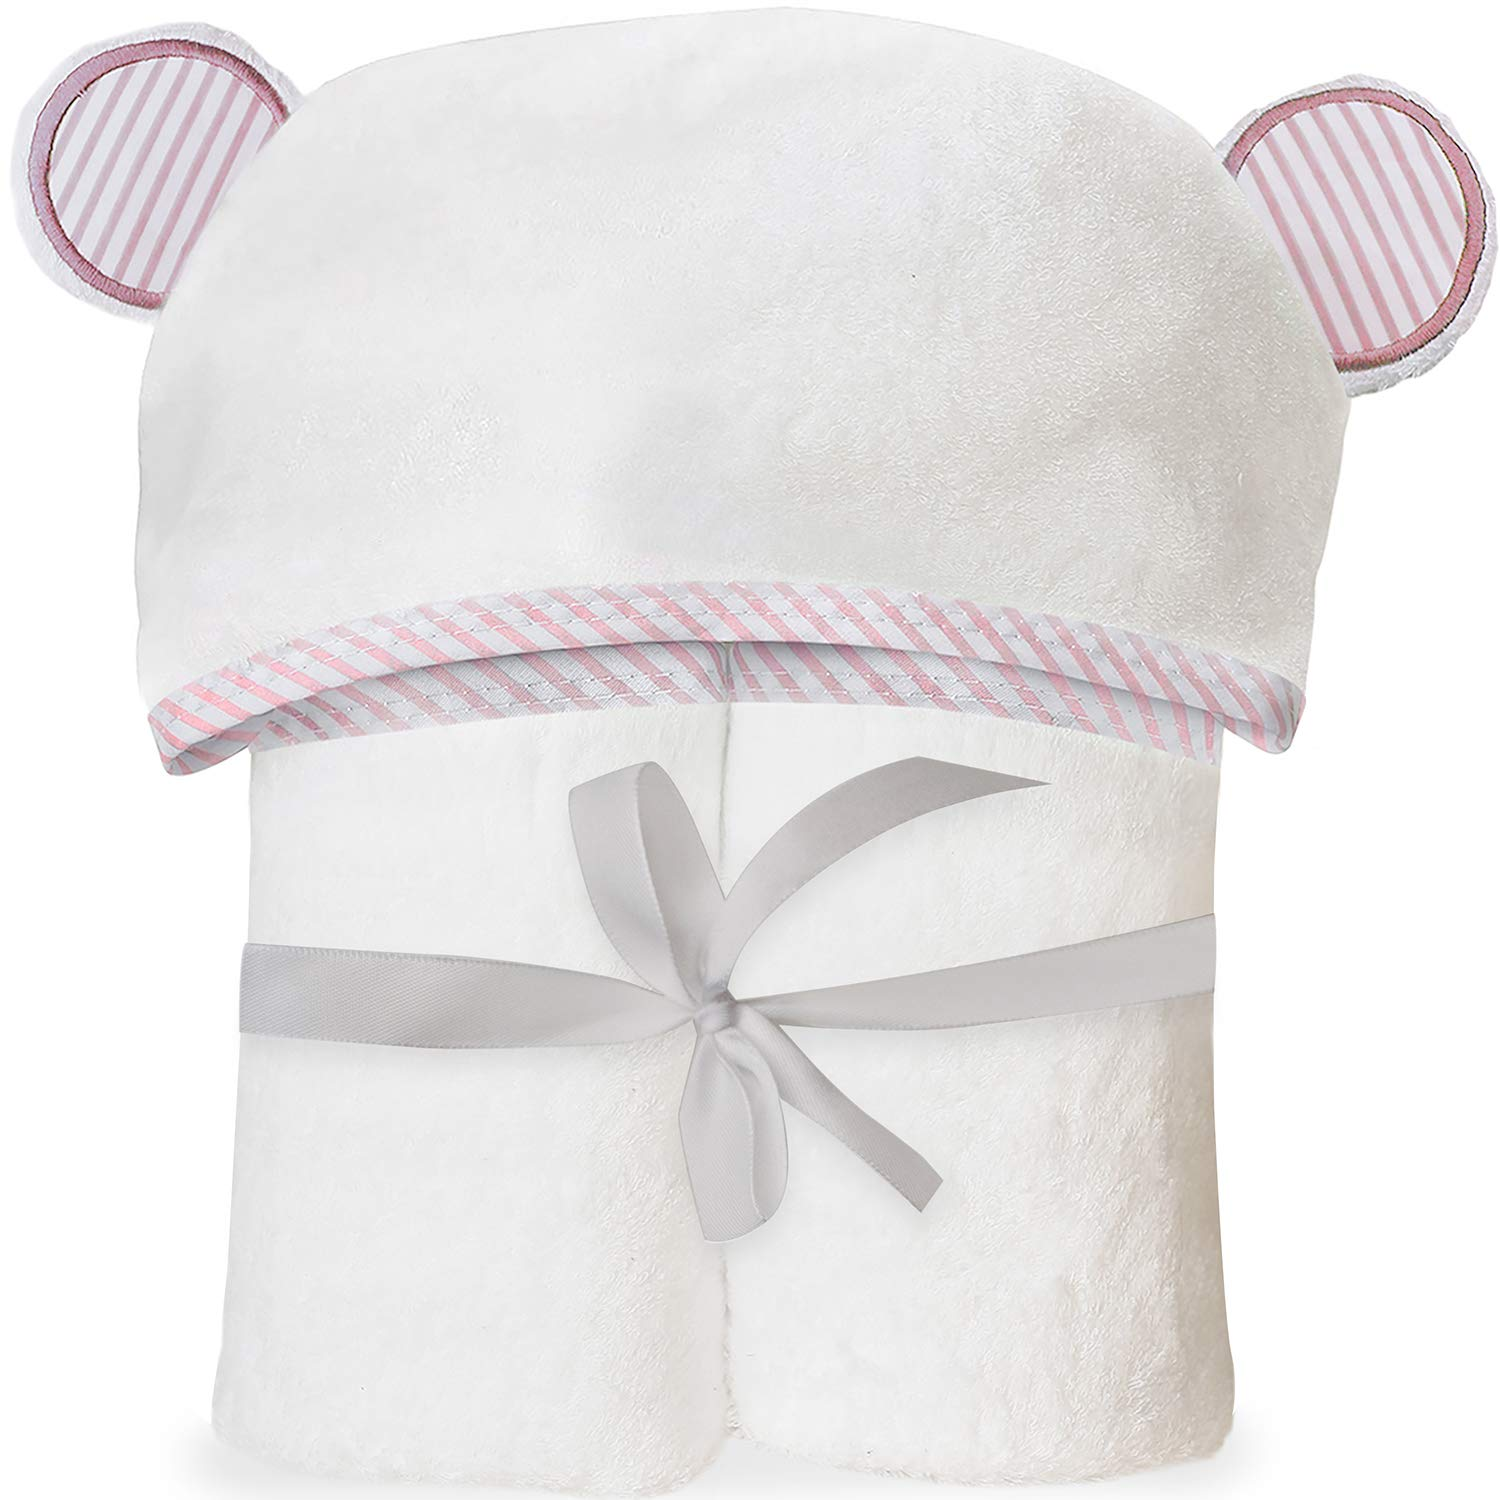 San Francisco Baby Ultra Soft Bamboo Hooded Baby Towel - Hooded Bath Towels with Ears for Babies, Toddlers - Large Baby Towel Perfect for Boys and Girls - Pink